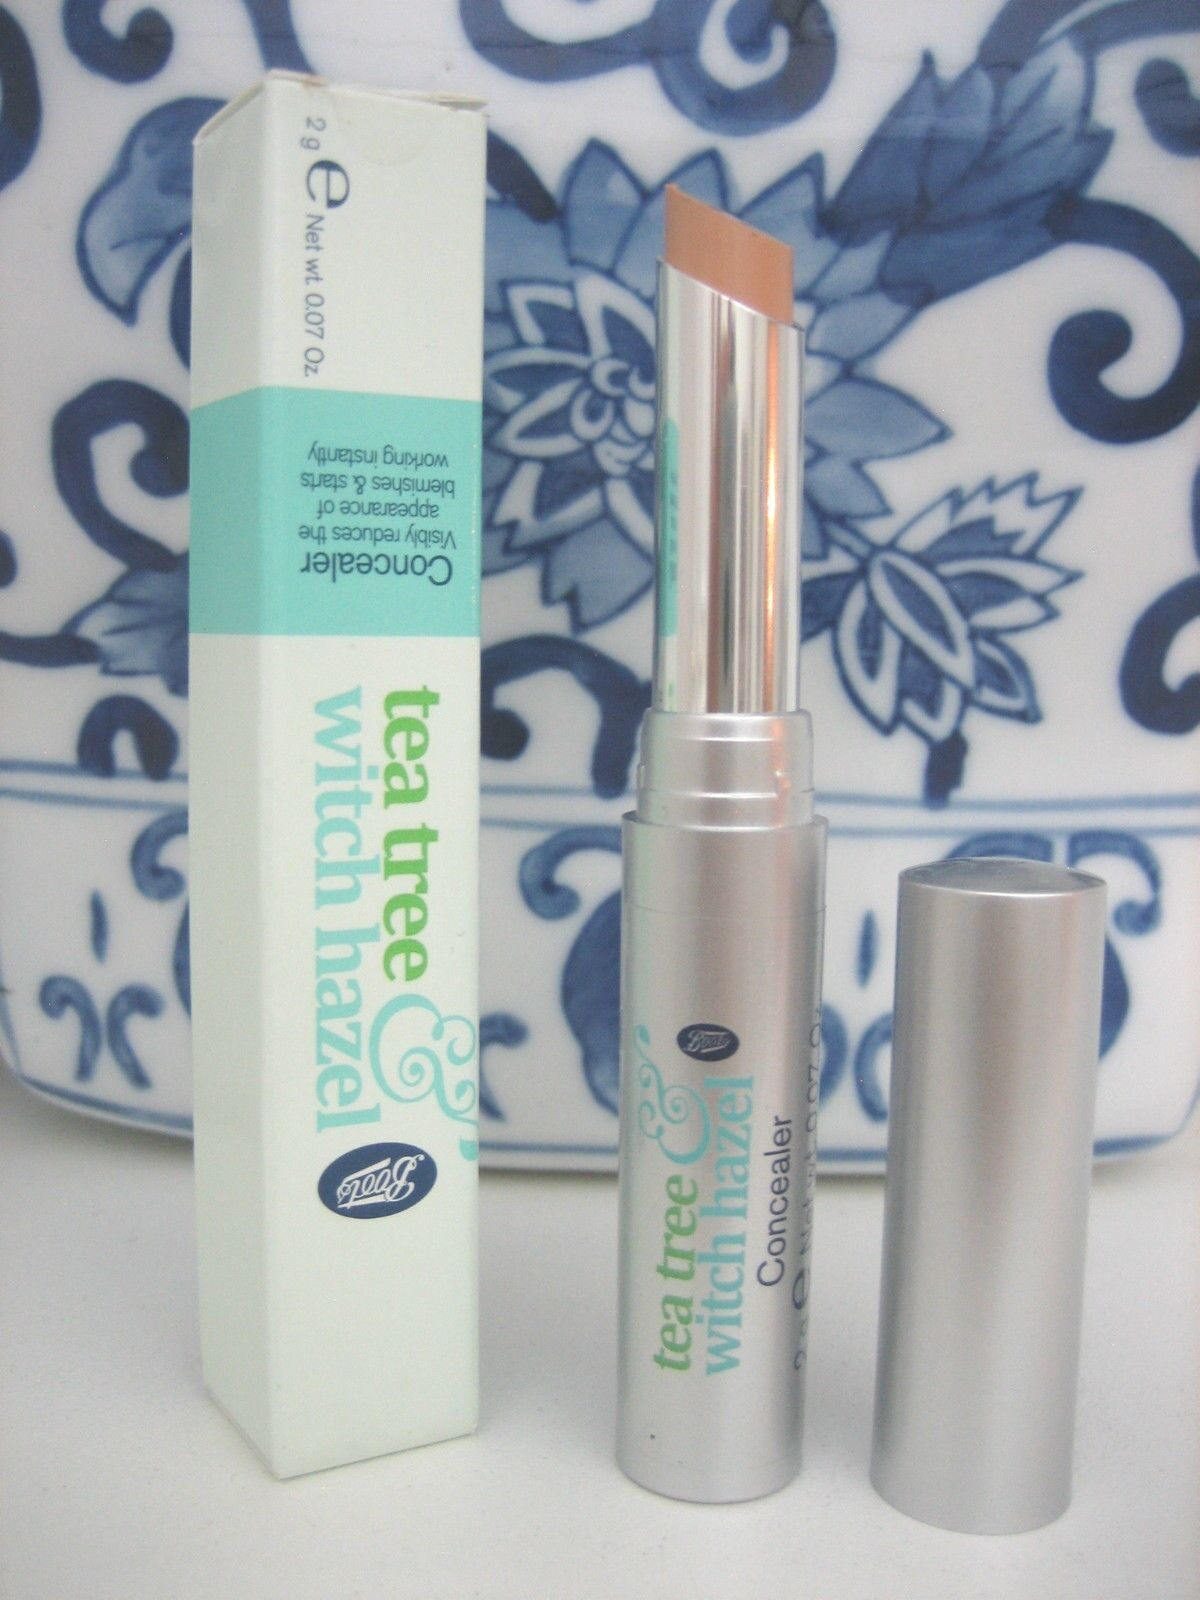 Primary image for Tea Tree & Witch Hazel Tinted CONCEALER fights blemishes, Boots brand UK